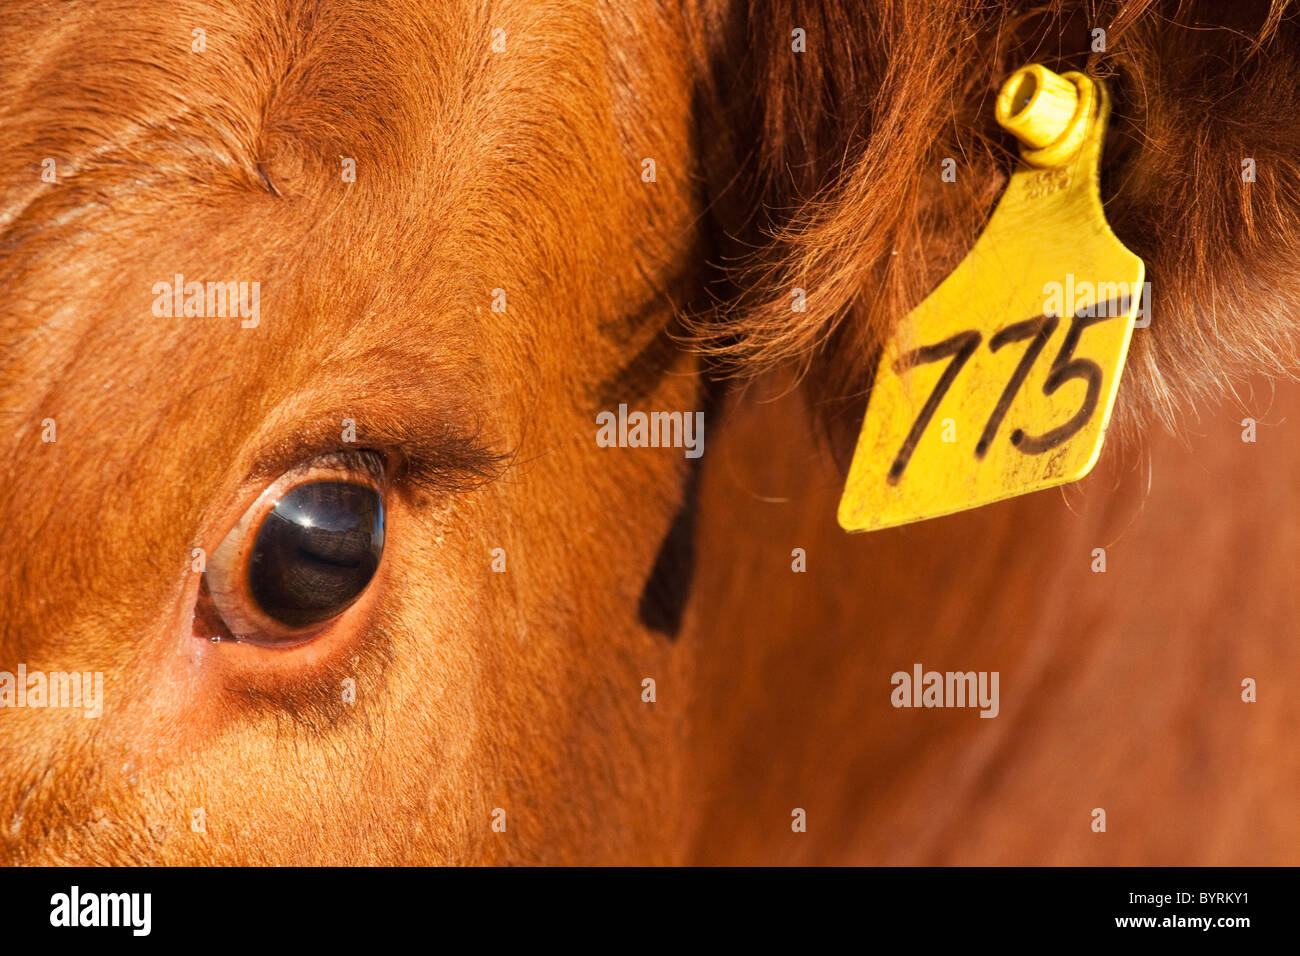 Livestock - Closeup of the ear tag and eye of a Red Angus beef cow / Alberta, Canada. - Stock Image